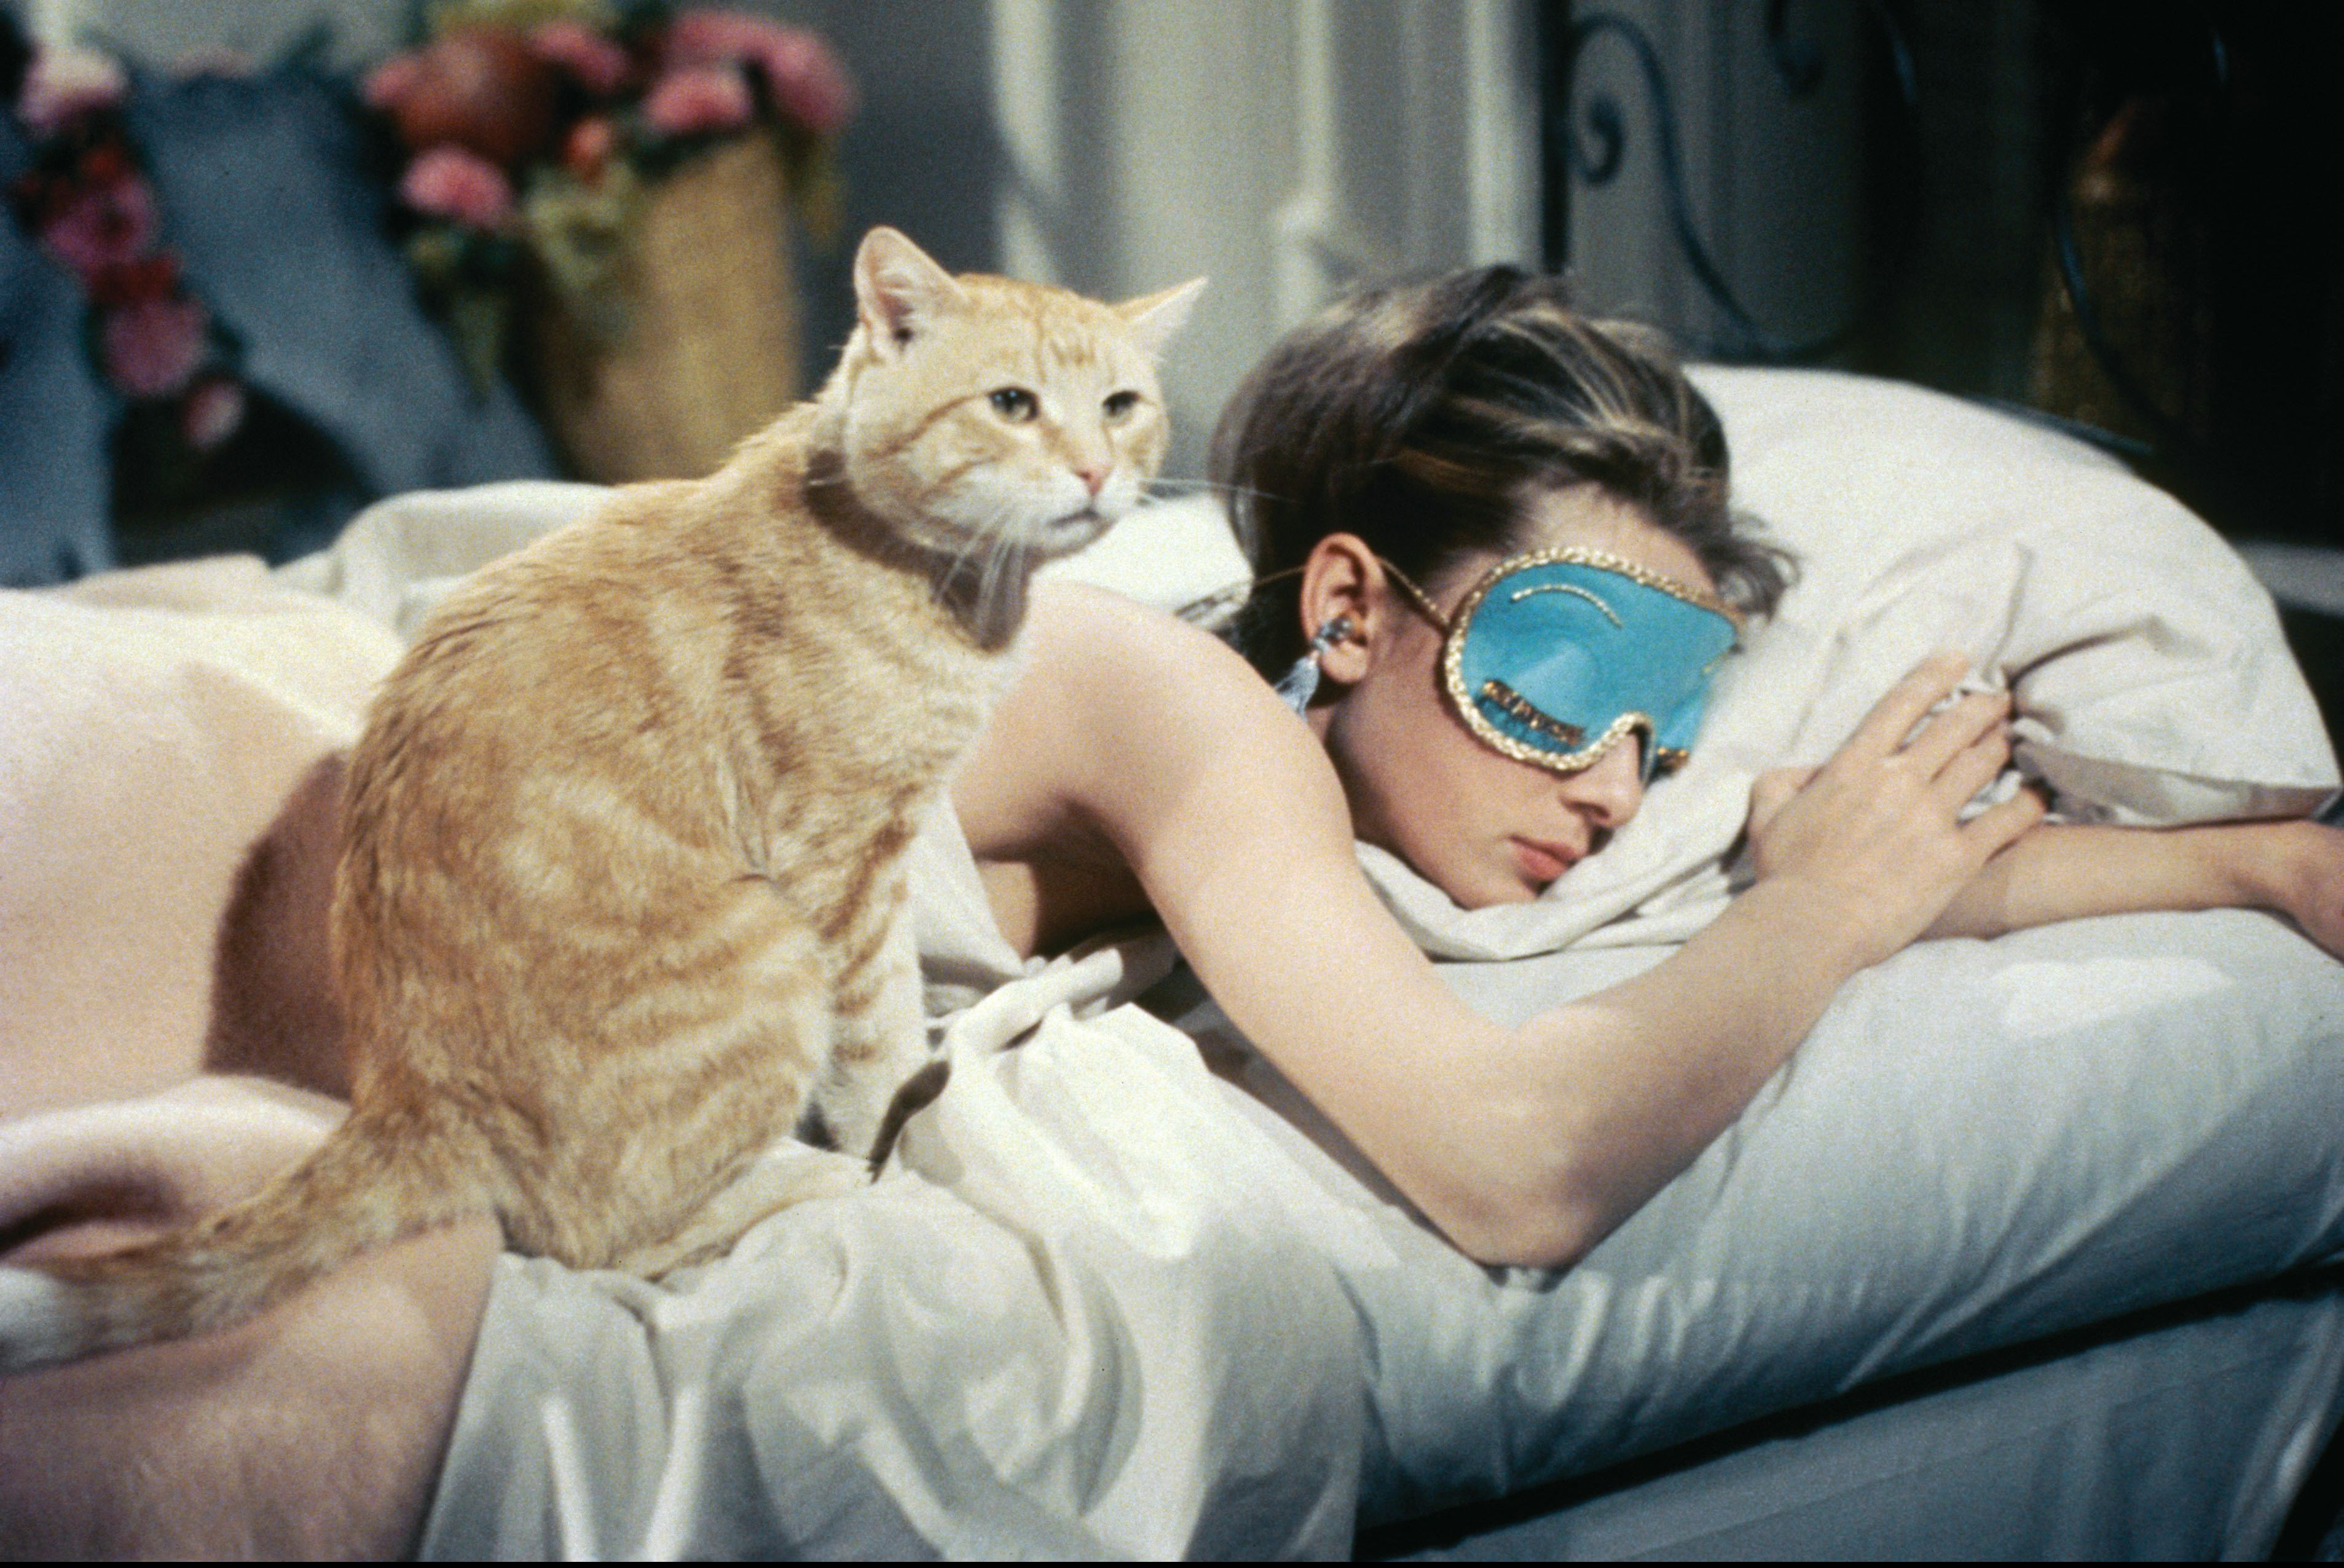 Watch Now A favorite of dorm-room posters and Halloween costumes, Blake Edwards's comedy about girl-about-town Holly Golightly helped turn Audrey Hepburn into a fashion icon, thanks to her long black gown, elegant up-do, and signature black sunglasses. (She nails a trench coat too.)